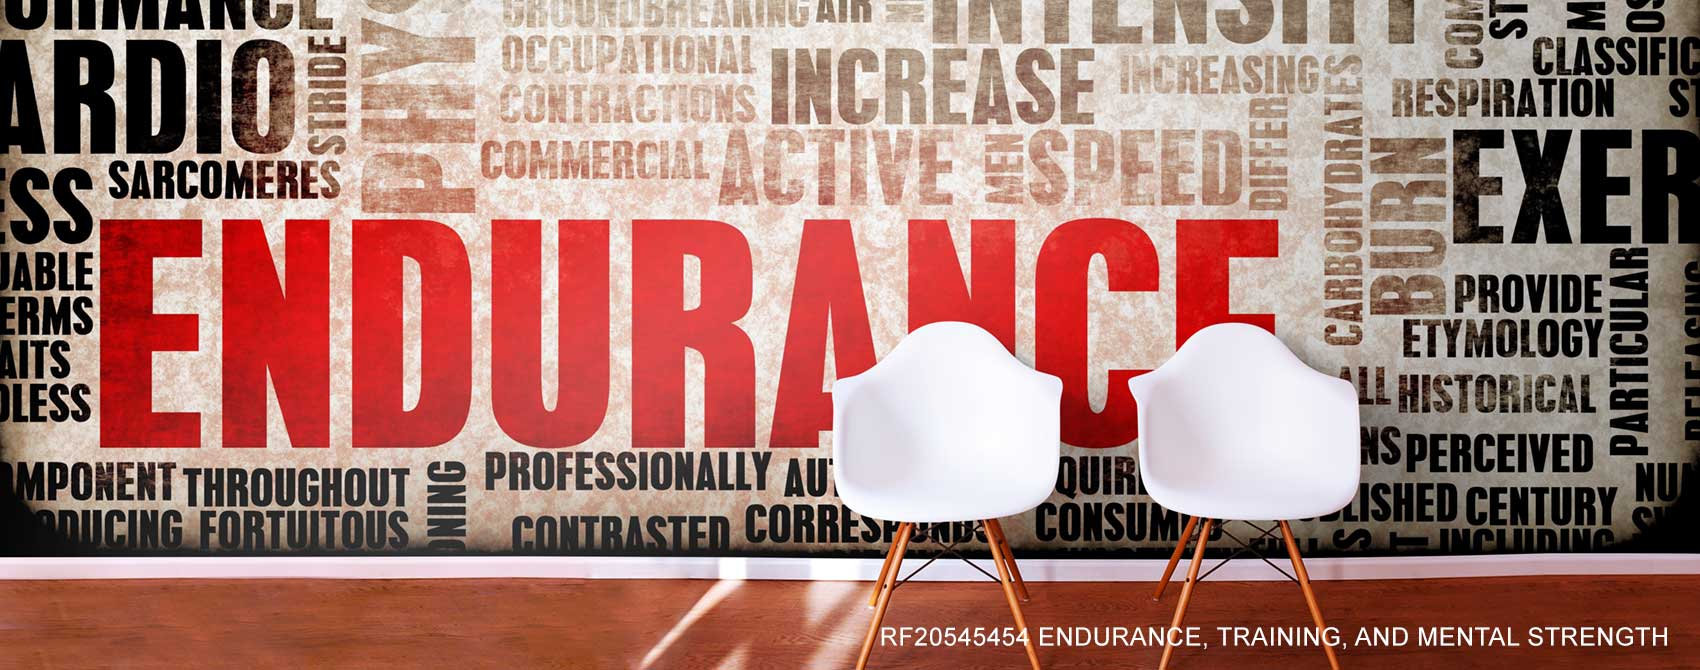 Endurance, Training, And Mental Strength Word Cloud Wall Mural